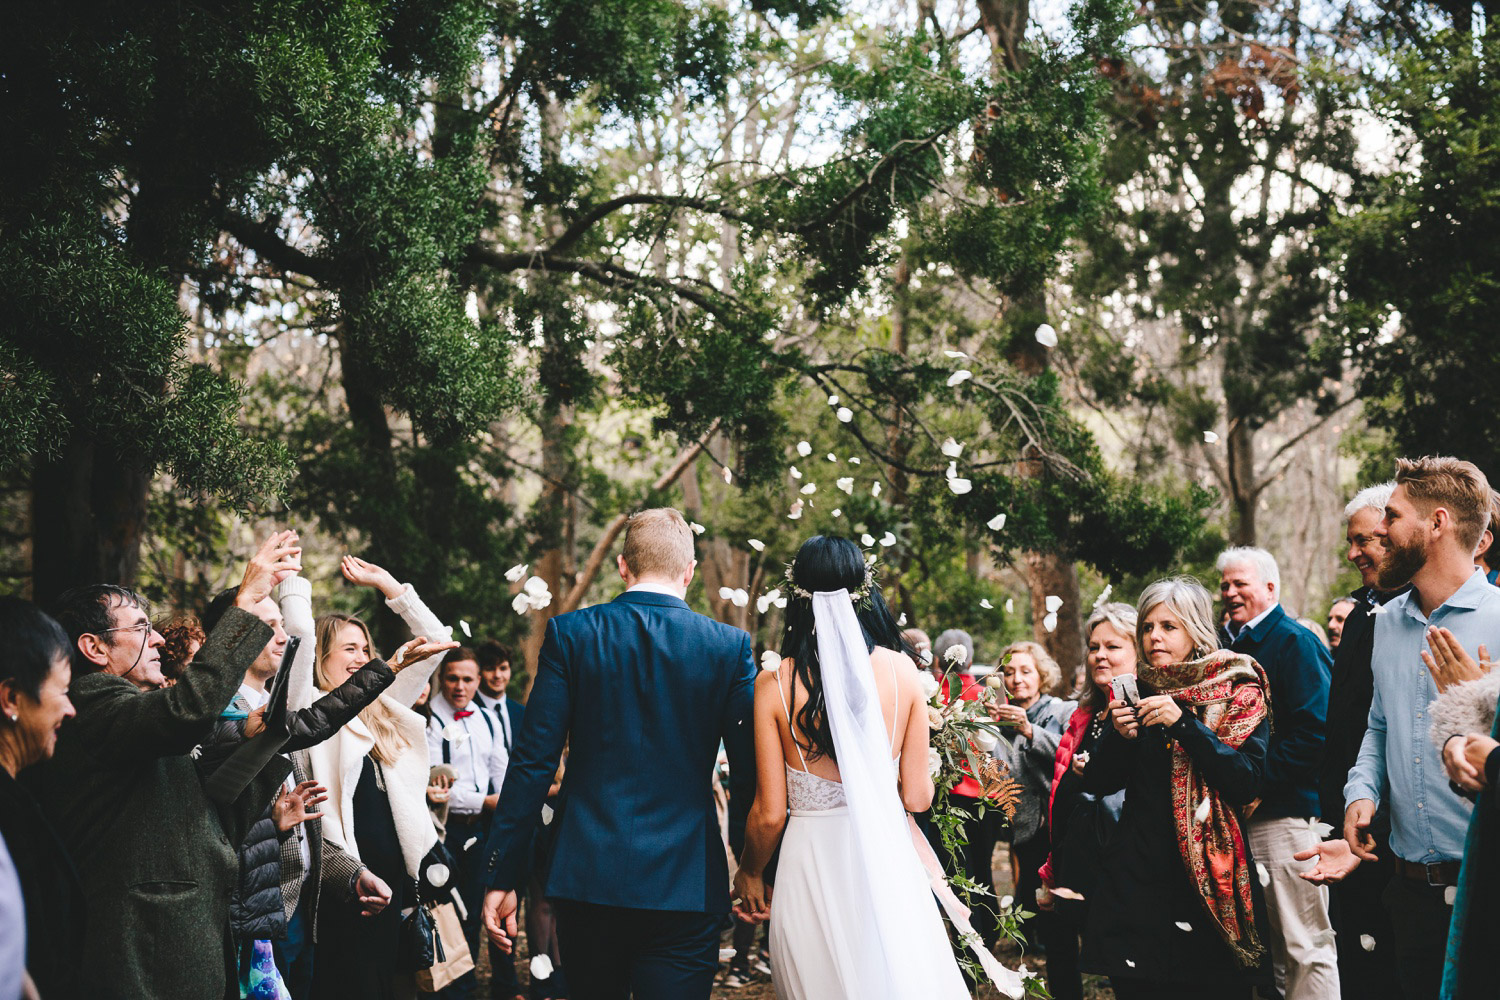 western-cape-photoghers-gen-scott-greyton-wedding-photography-charlie-ray82.jpg